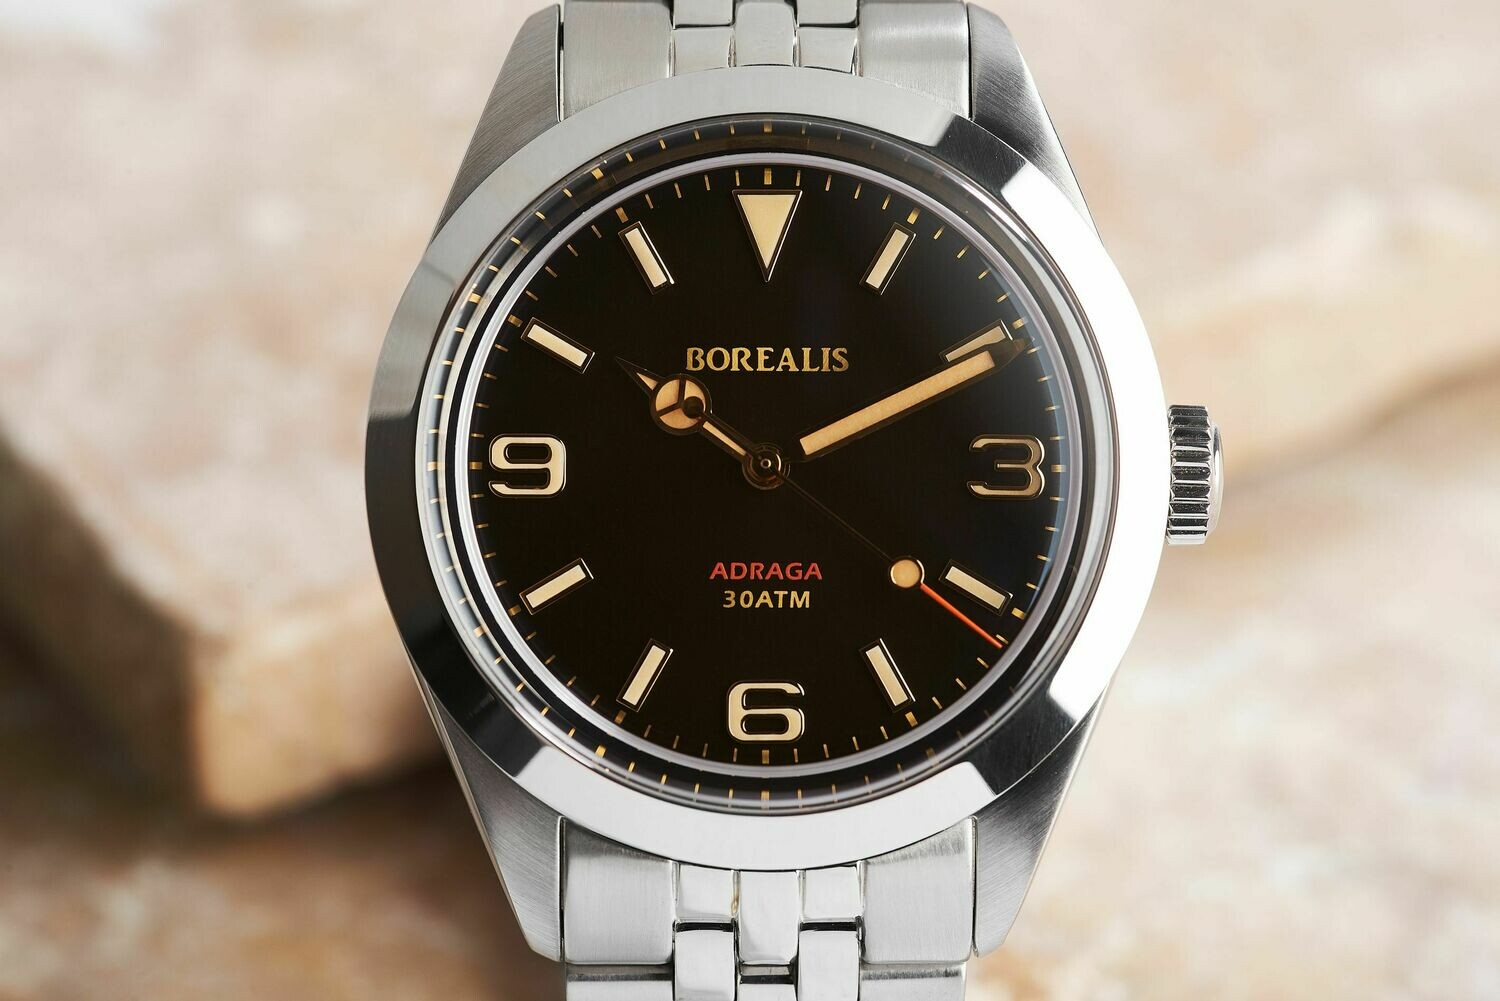 Borealis Adraga Stainless Steel Miyota 90S5 black dial Mercedes Hands No Date Old Radium X1 lume